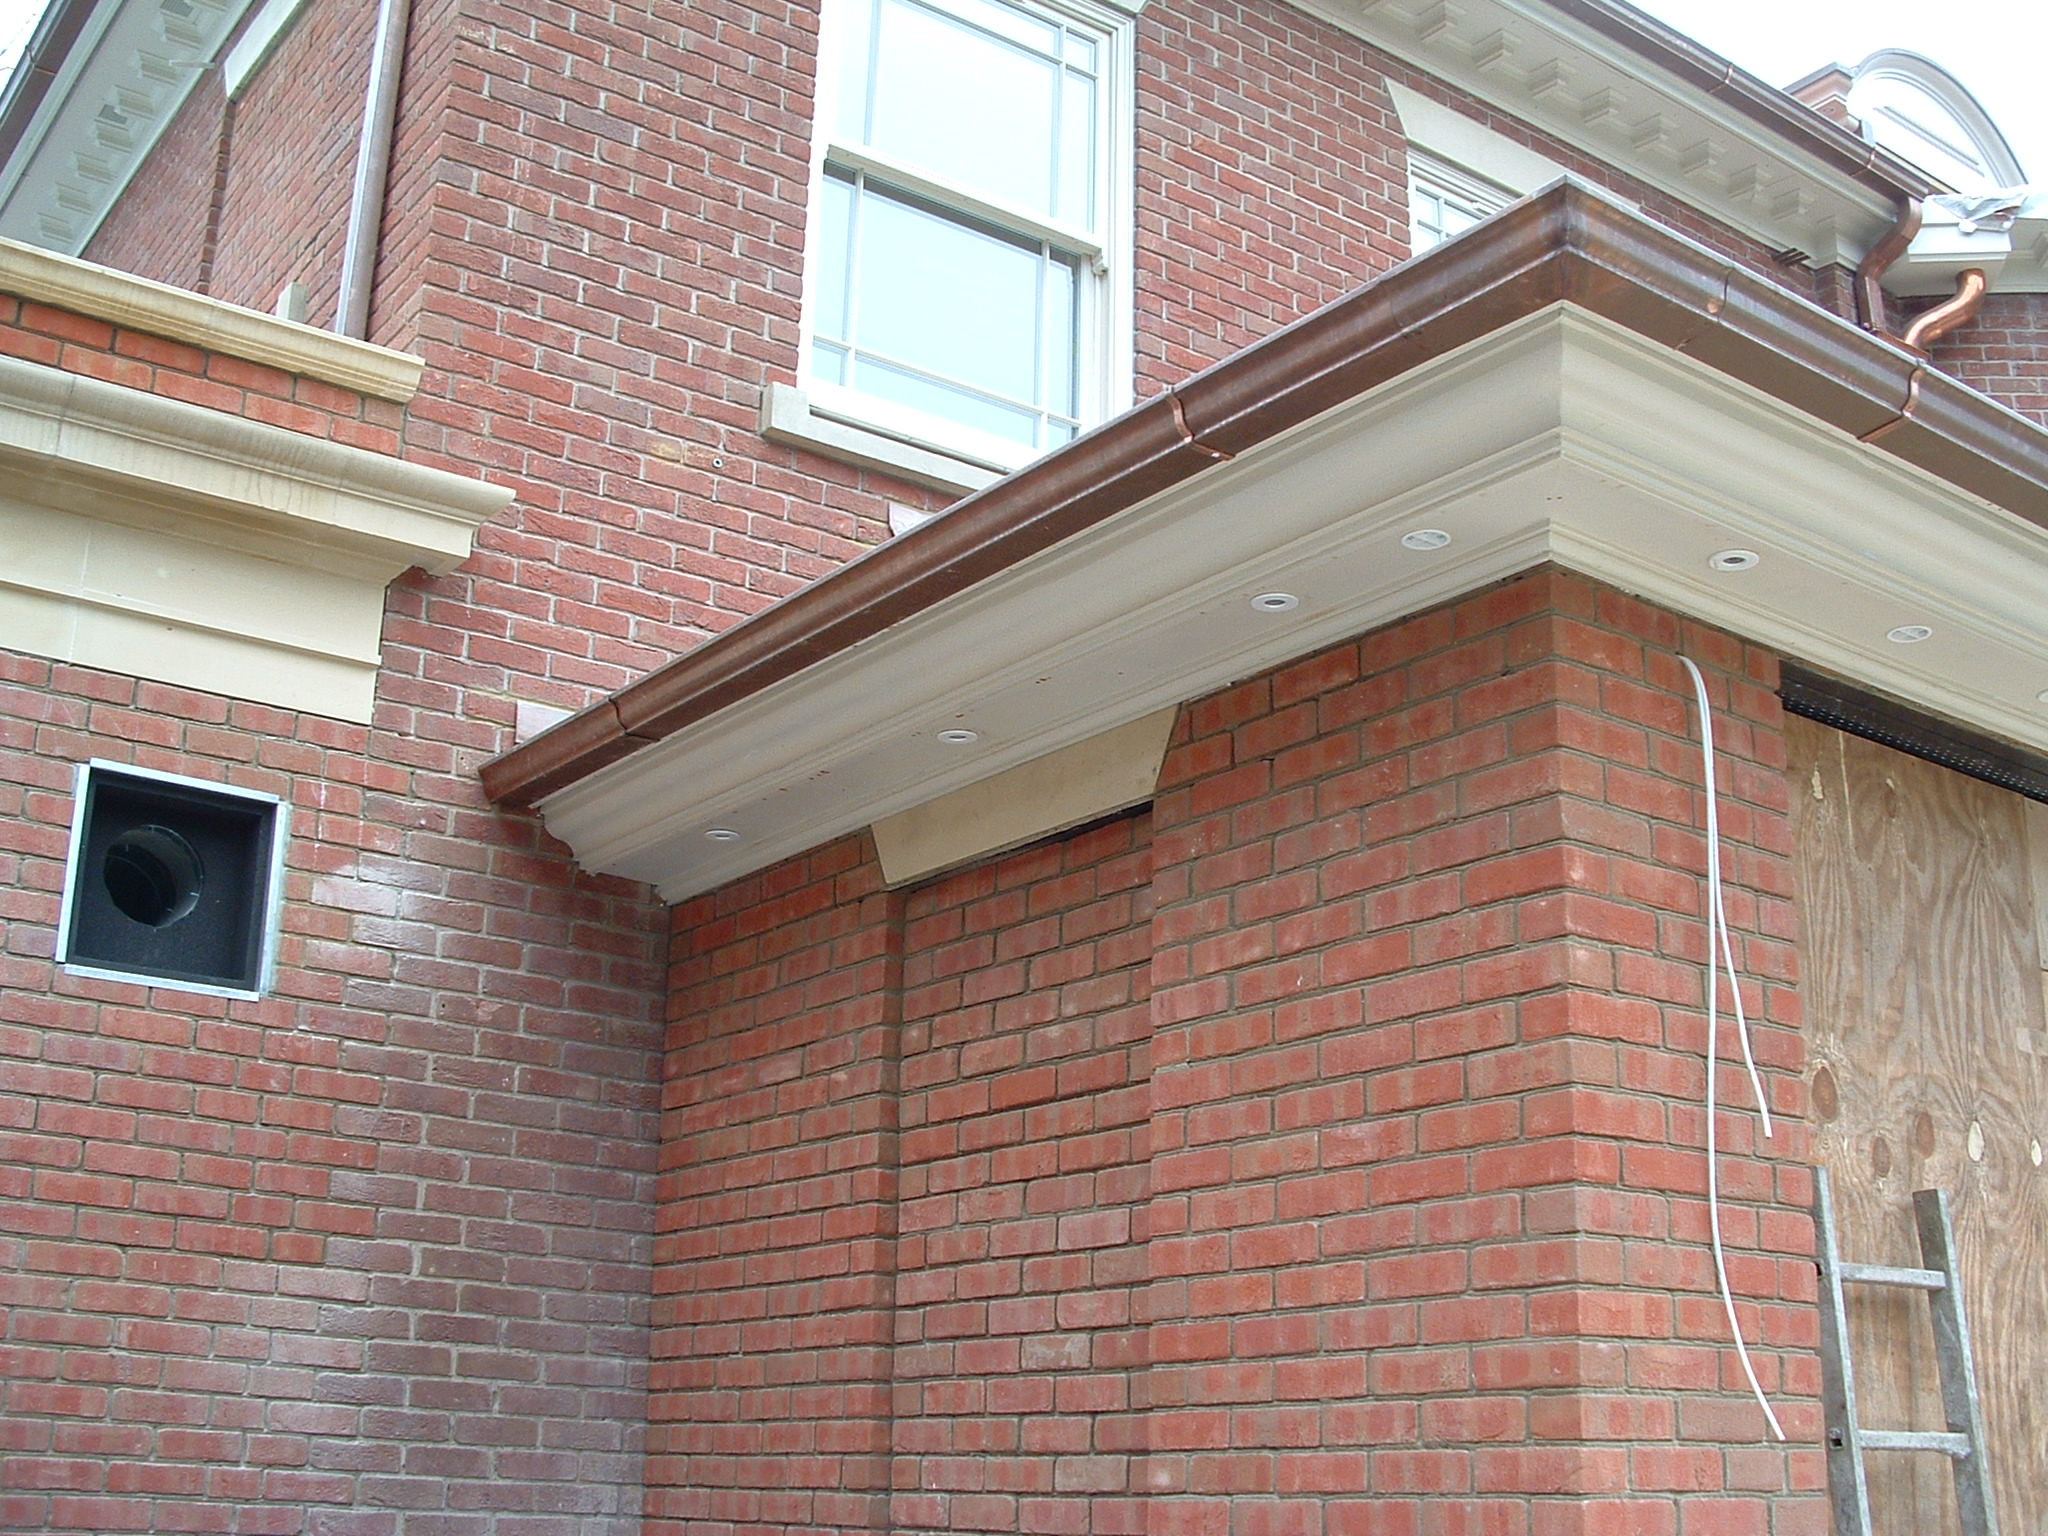 Ogee copper guttering